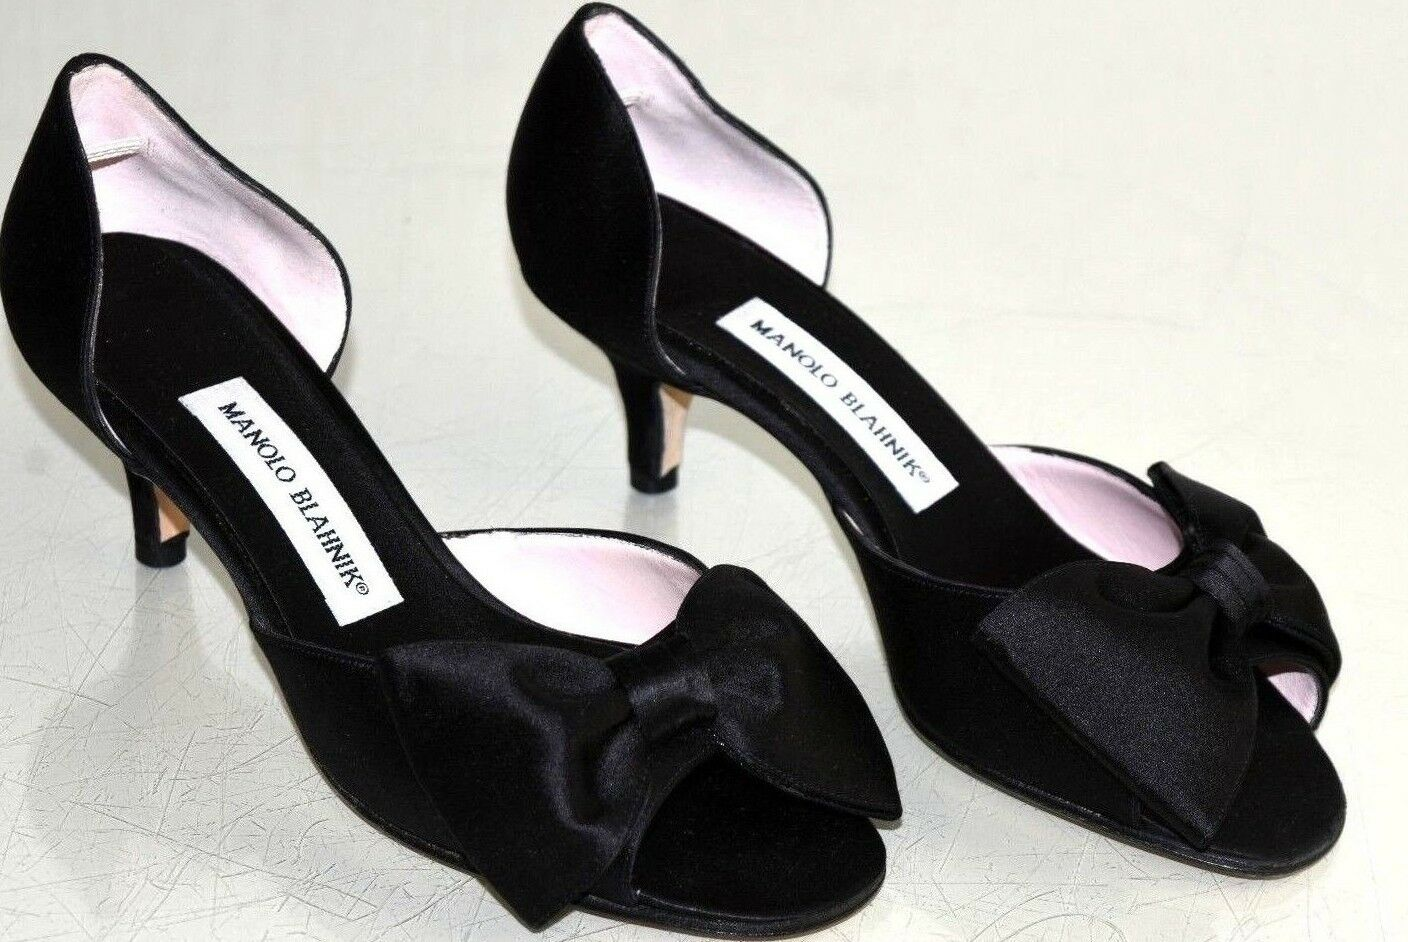 785 New Manolo Blahnik CLAUSADO Bow Dorsay Black Satin Pumps Heels shoes 36.5